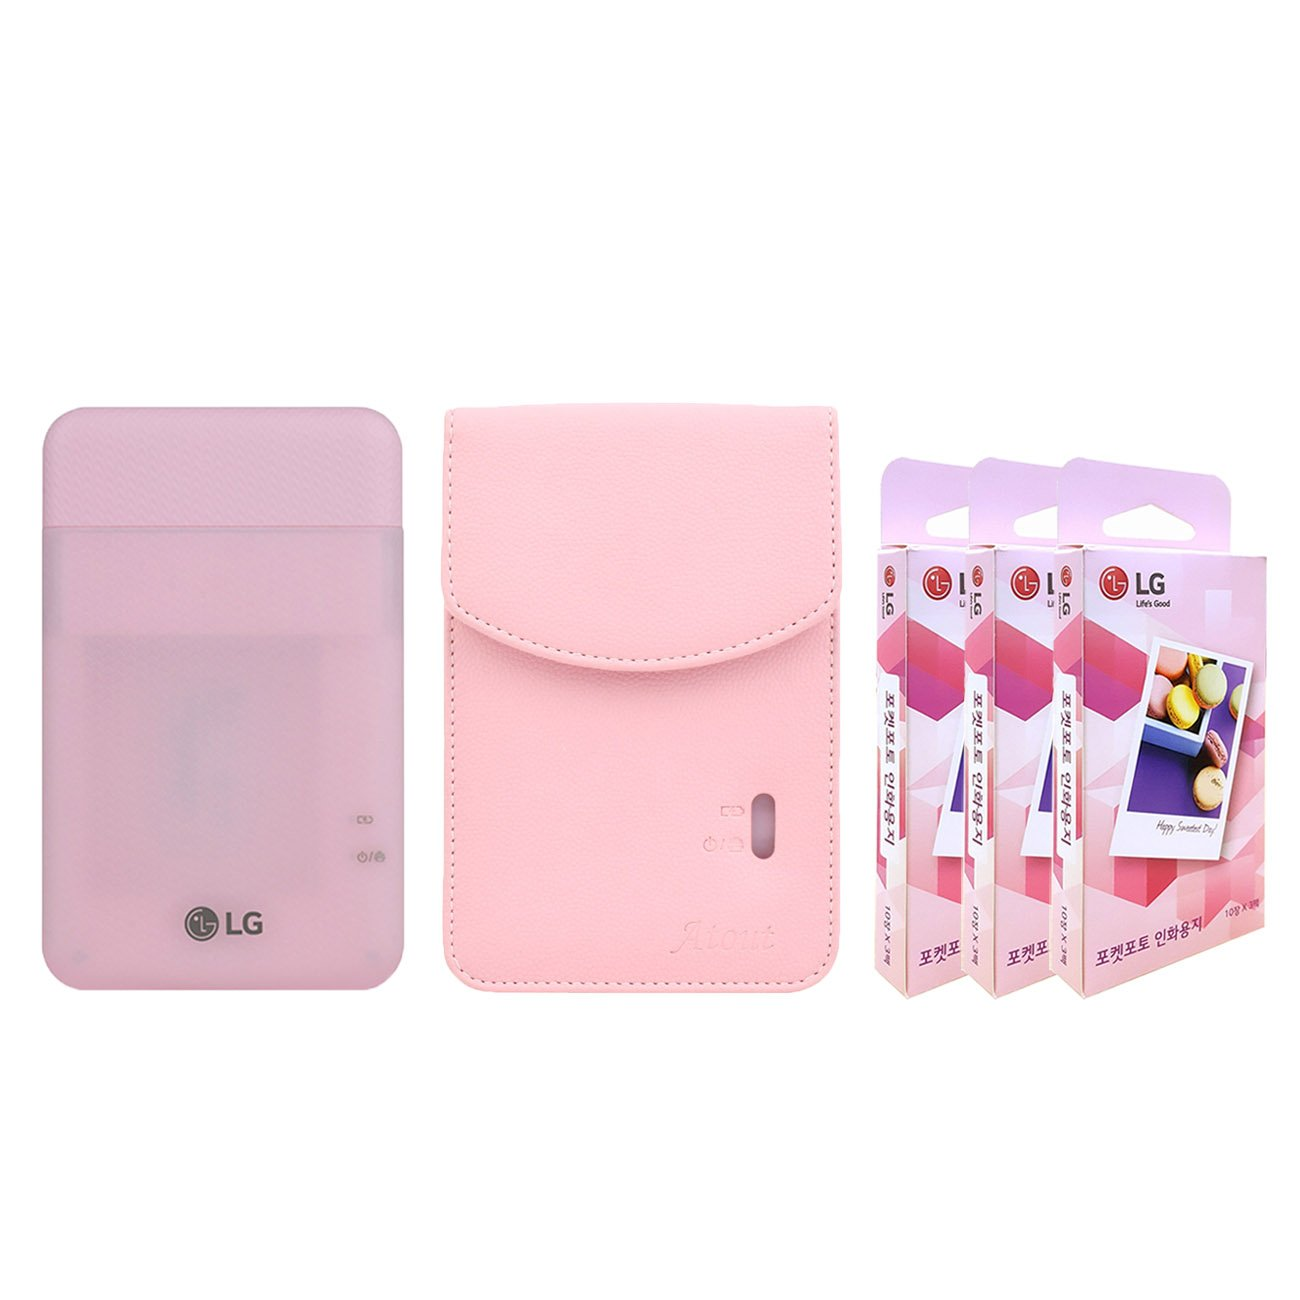 LG PD261 Portable Mobile Pocket Photo Printer [Pink] + Zink Paper 90 Sheets + Atout Premium Synthetic Leather Case [Pink] with Gift USB Cable [International Version] by LG